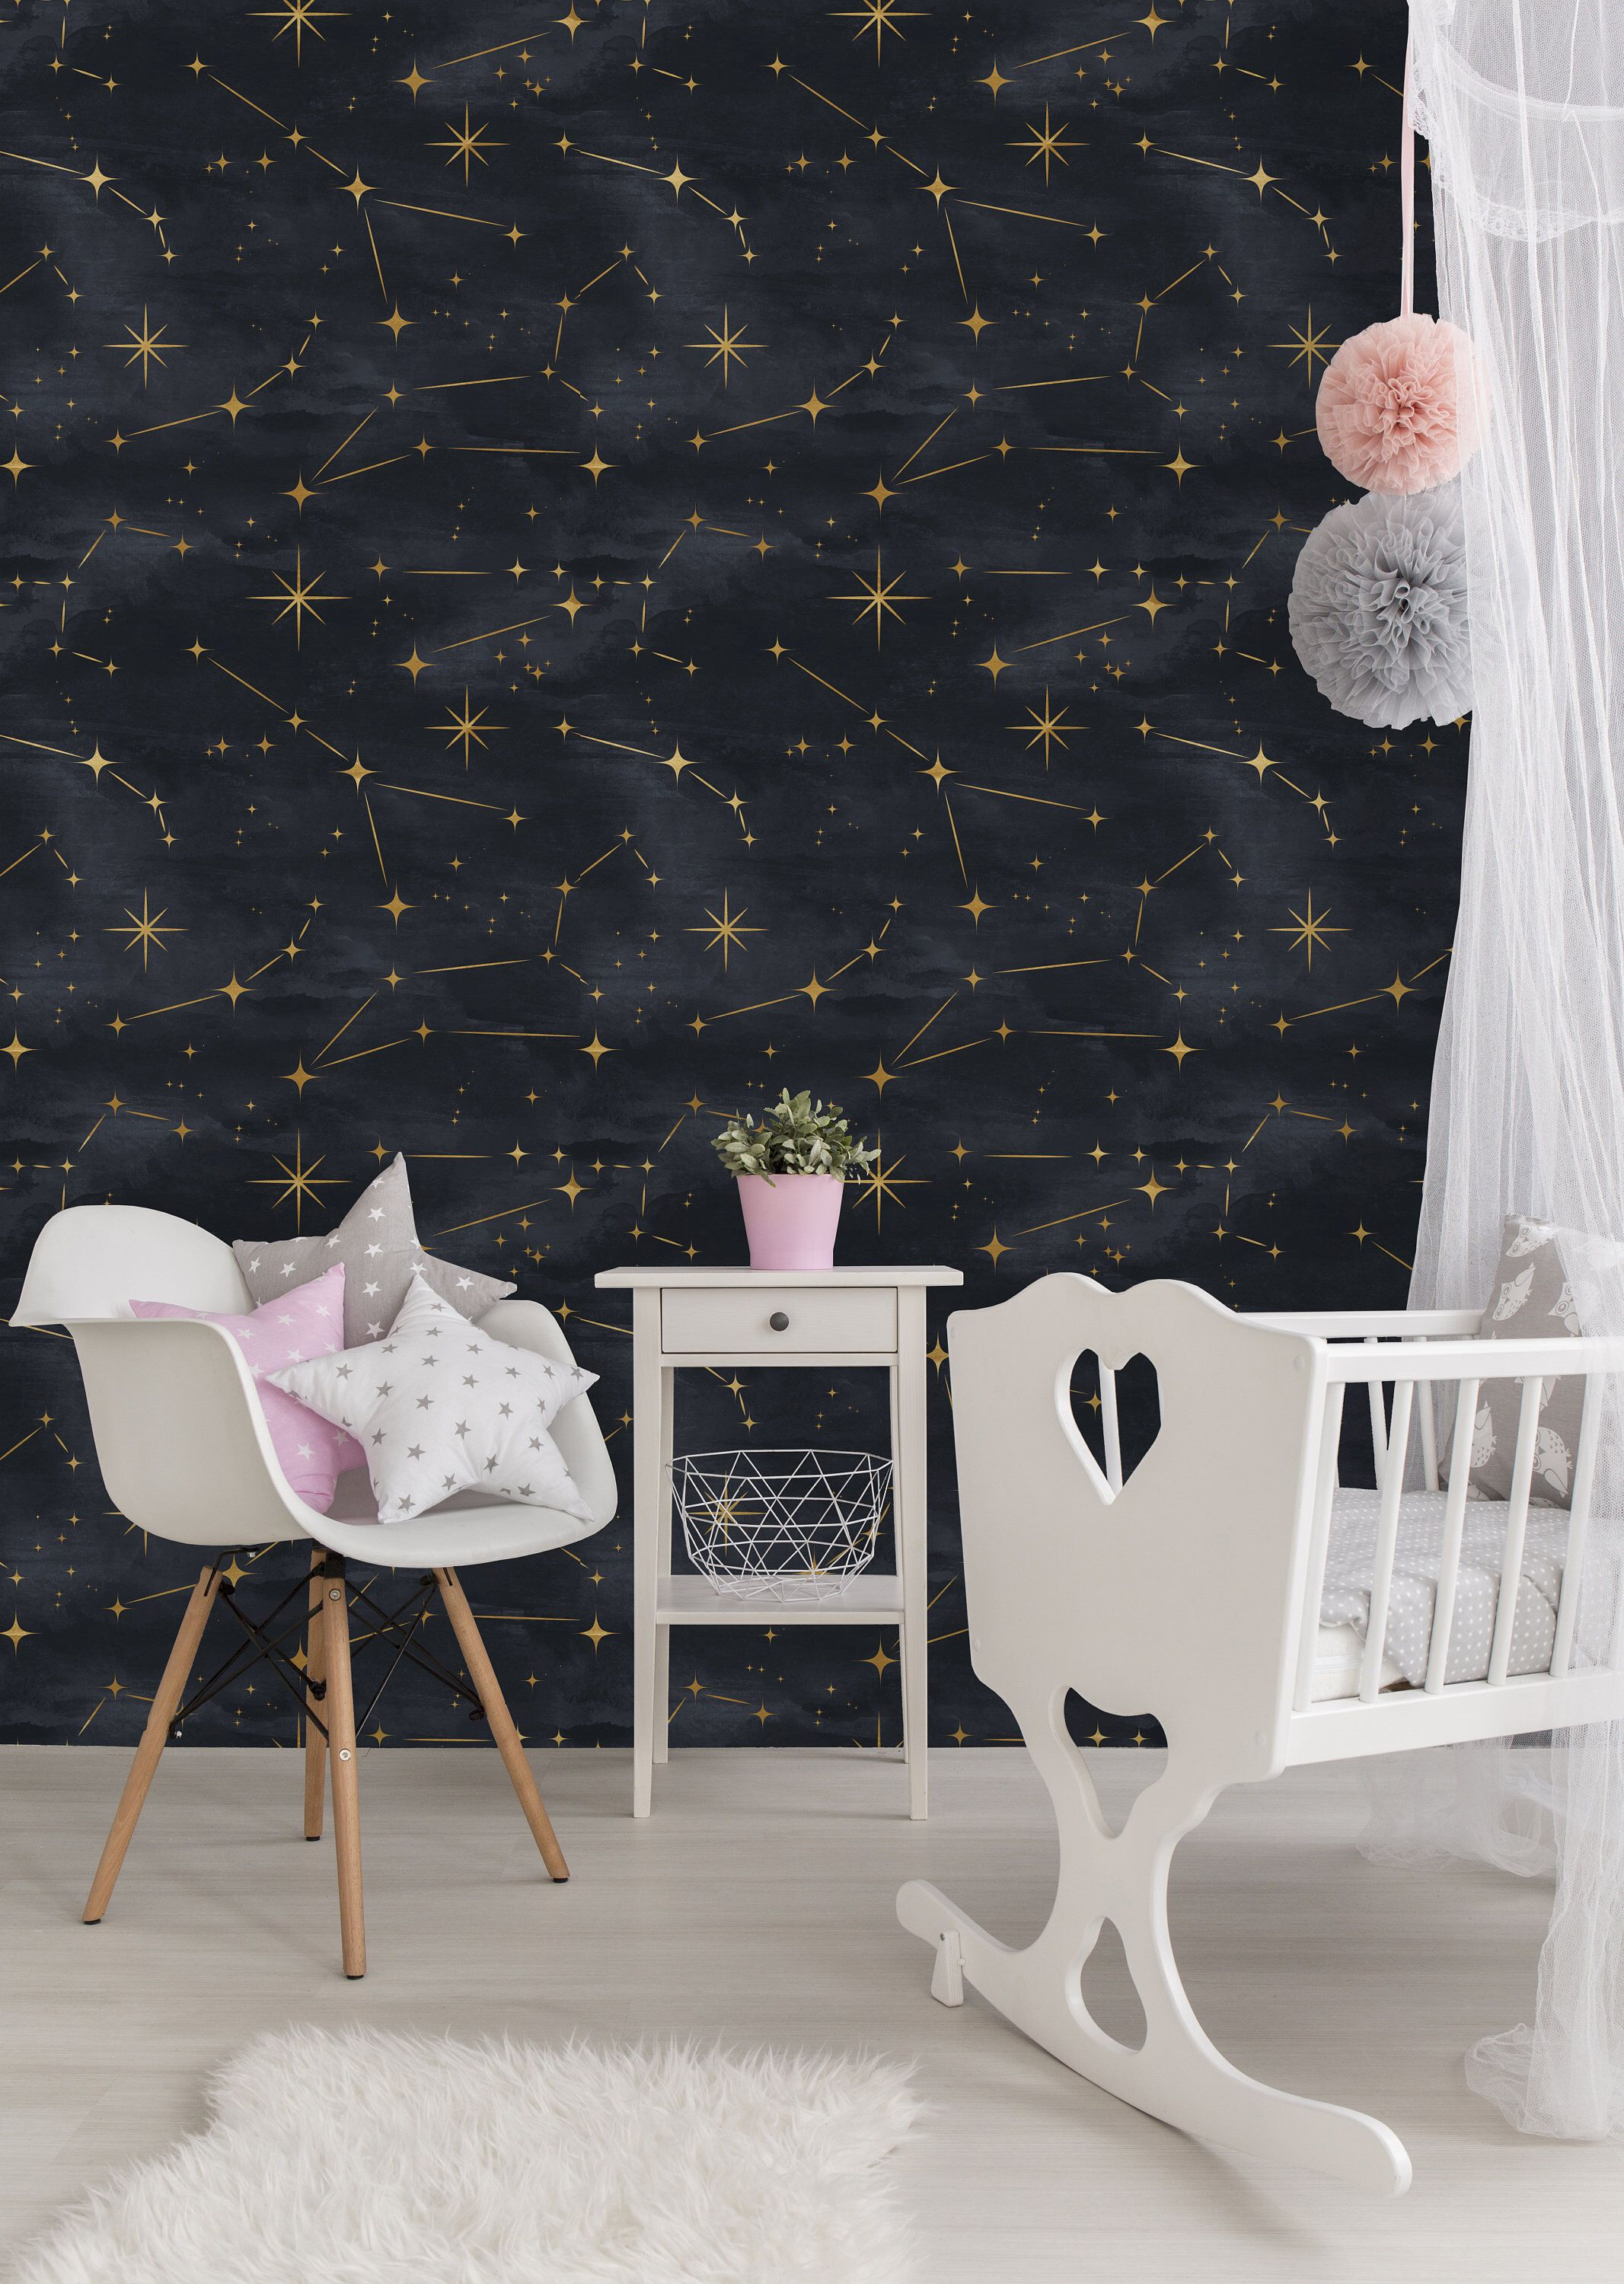 Removable Wallpaper Peel And Stick Wallpaper Self Adhesive Etsy Peel And Stick Wallpaper Removable Wallpaper Bedroom Wallpaper Stars